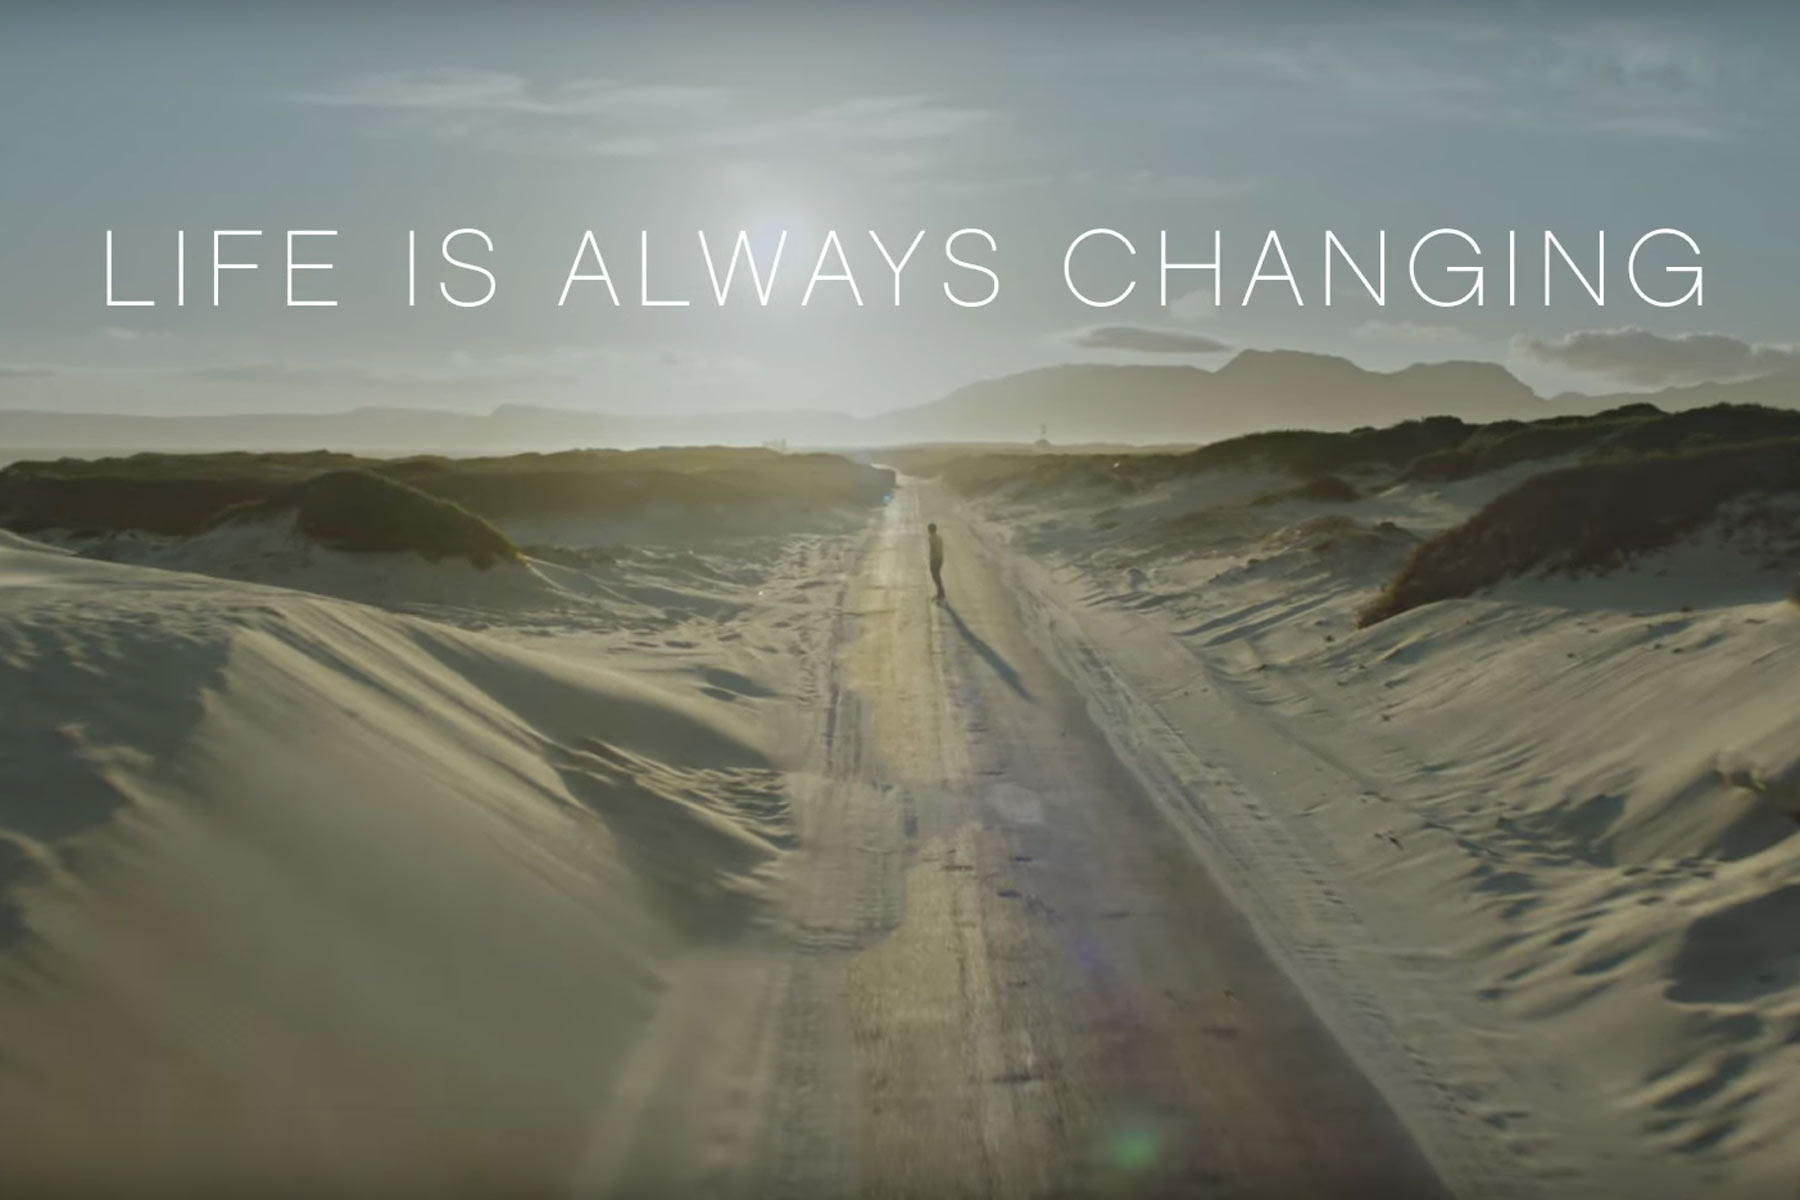 No changes Toyota defends decision to use Bowie song in RAV4 advert